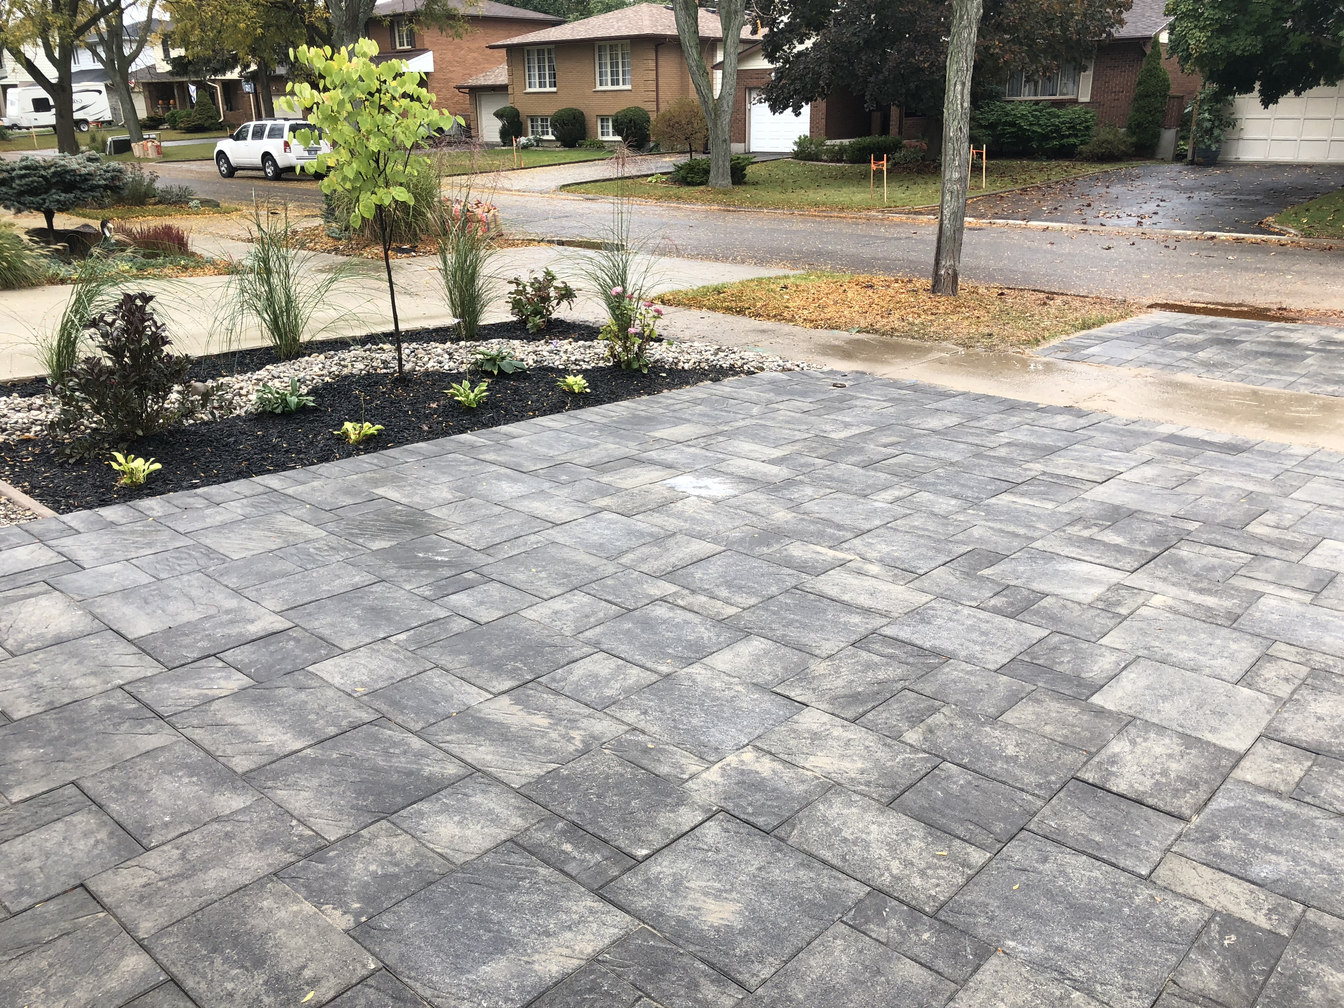 Interlocking Brick Paver Driveway in London Ontario region, a landscape & hardscape project by O'Connor Stone & Landscape, a local contractor.